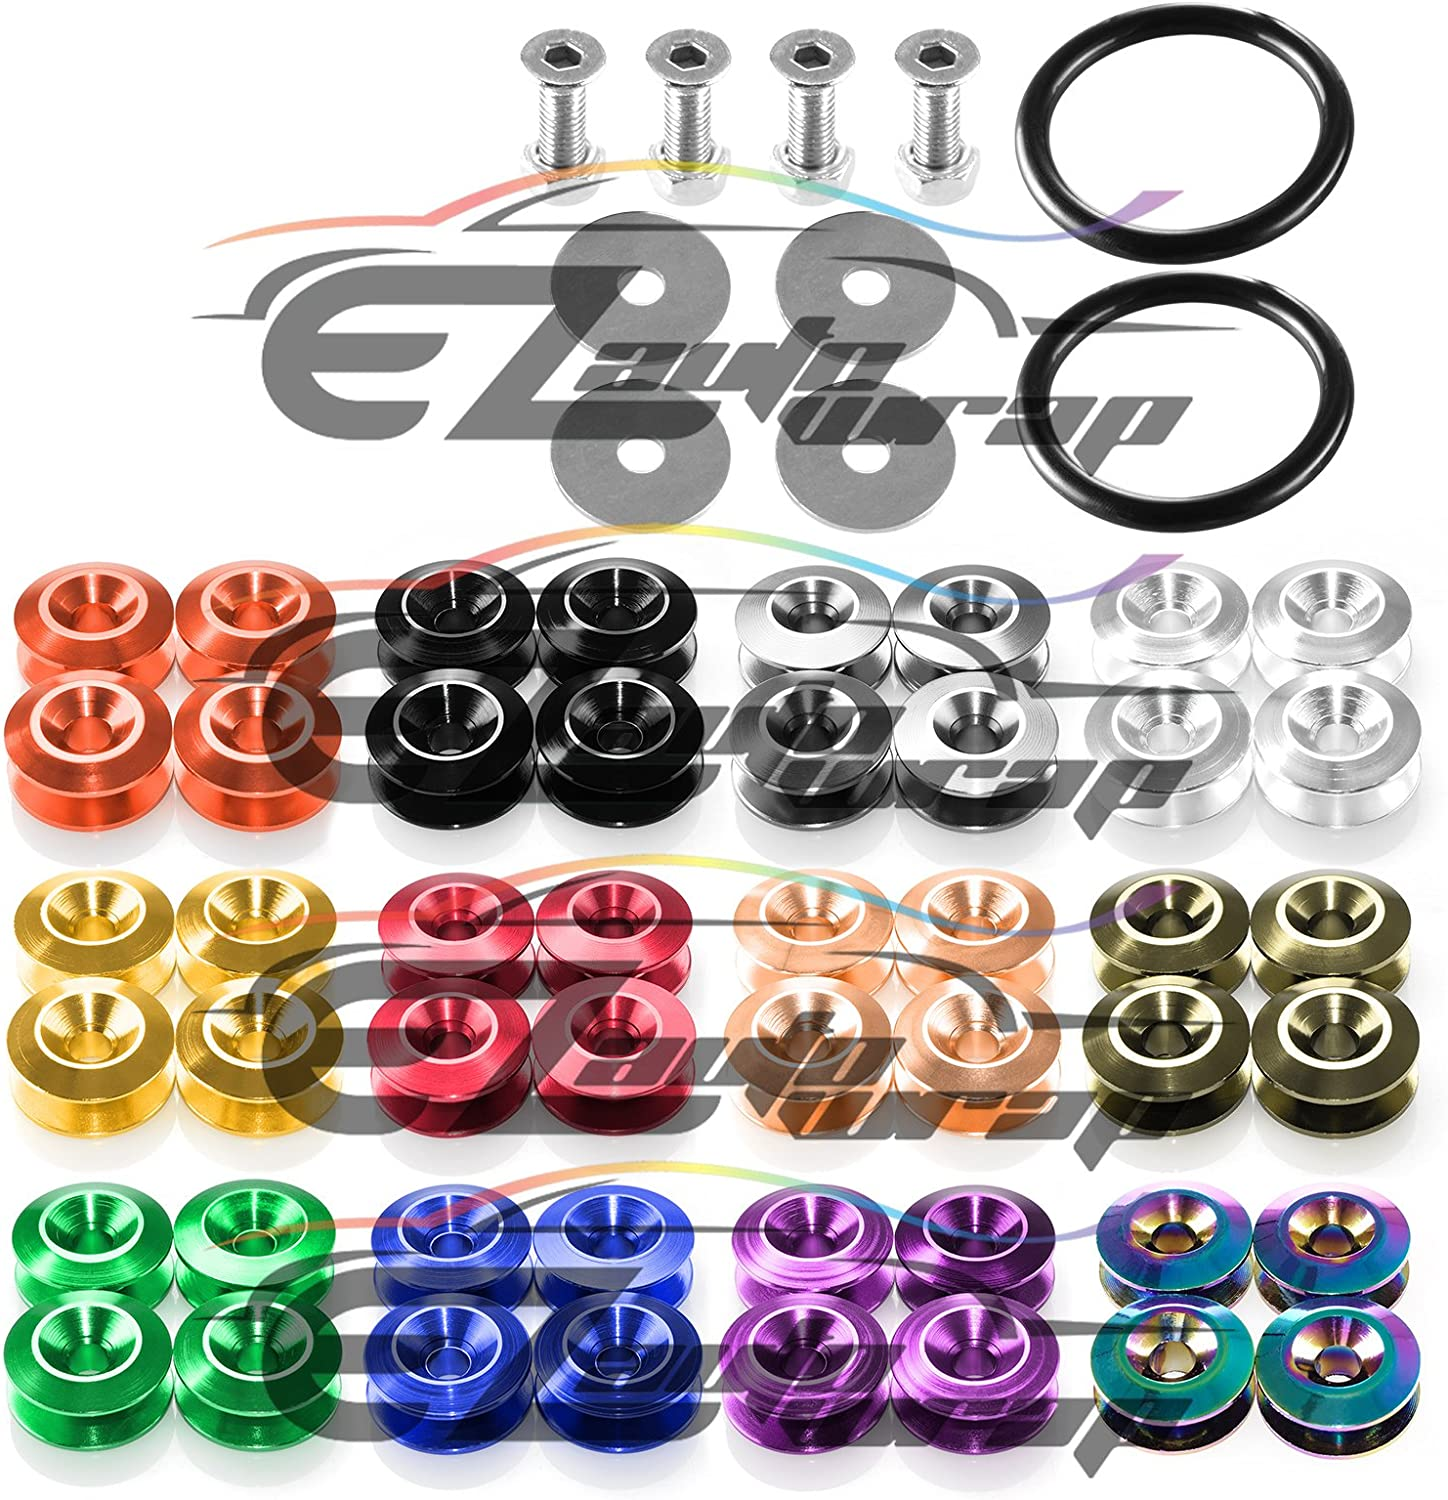 EZAUTOWRAP Black Spiked Quick Release Fasteners for Car Bumpers Trunk Fender Hatch Lids Kit